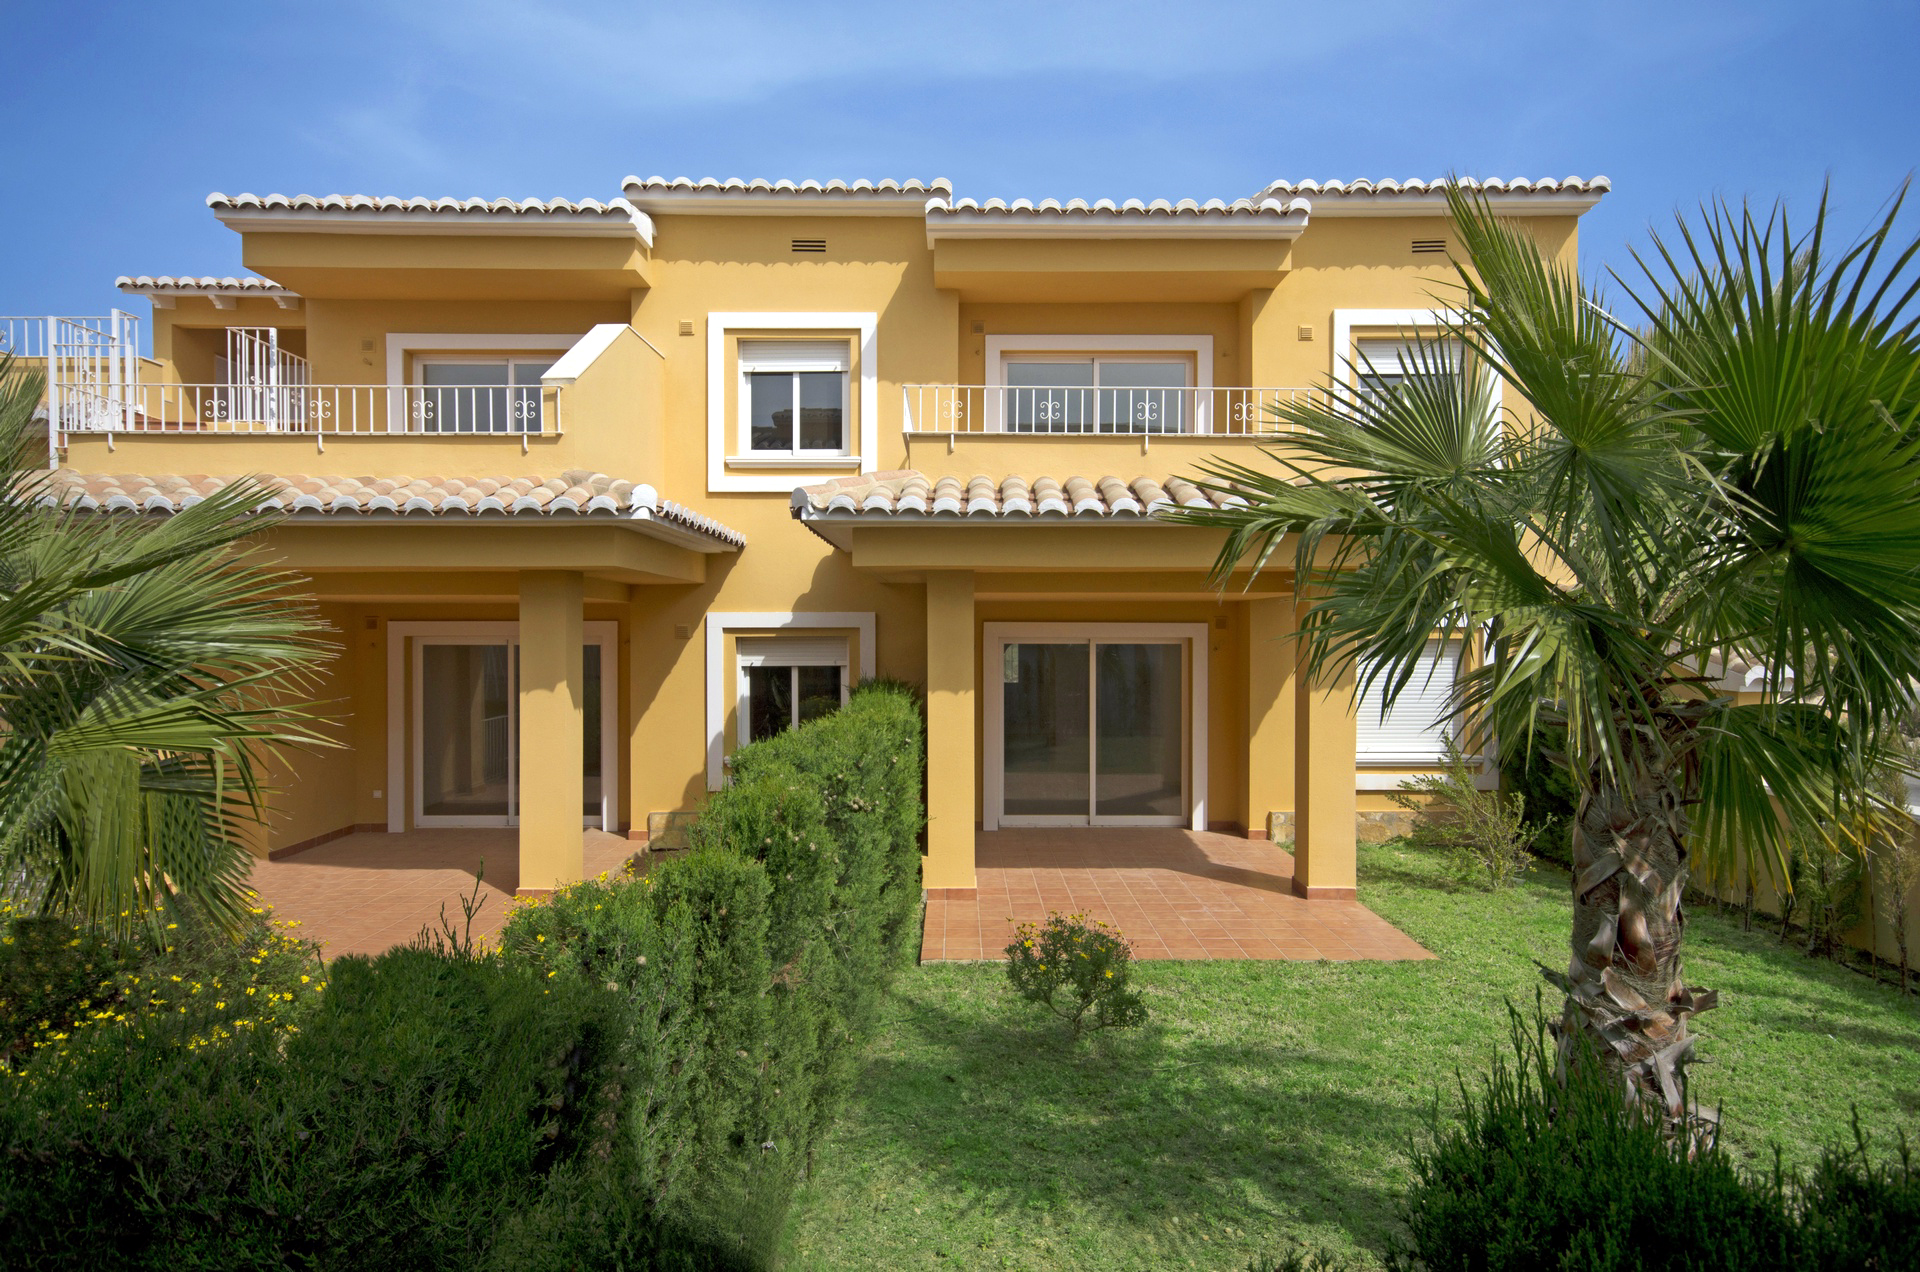 2 Bedroom Town house in Benitachell